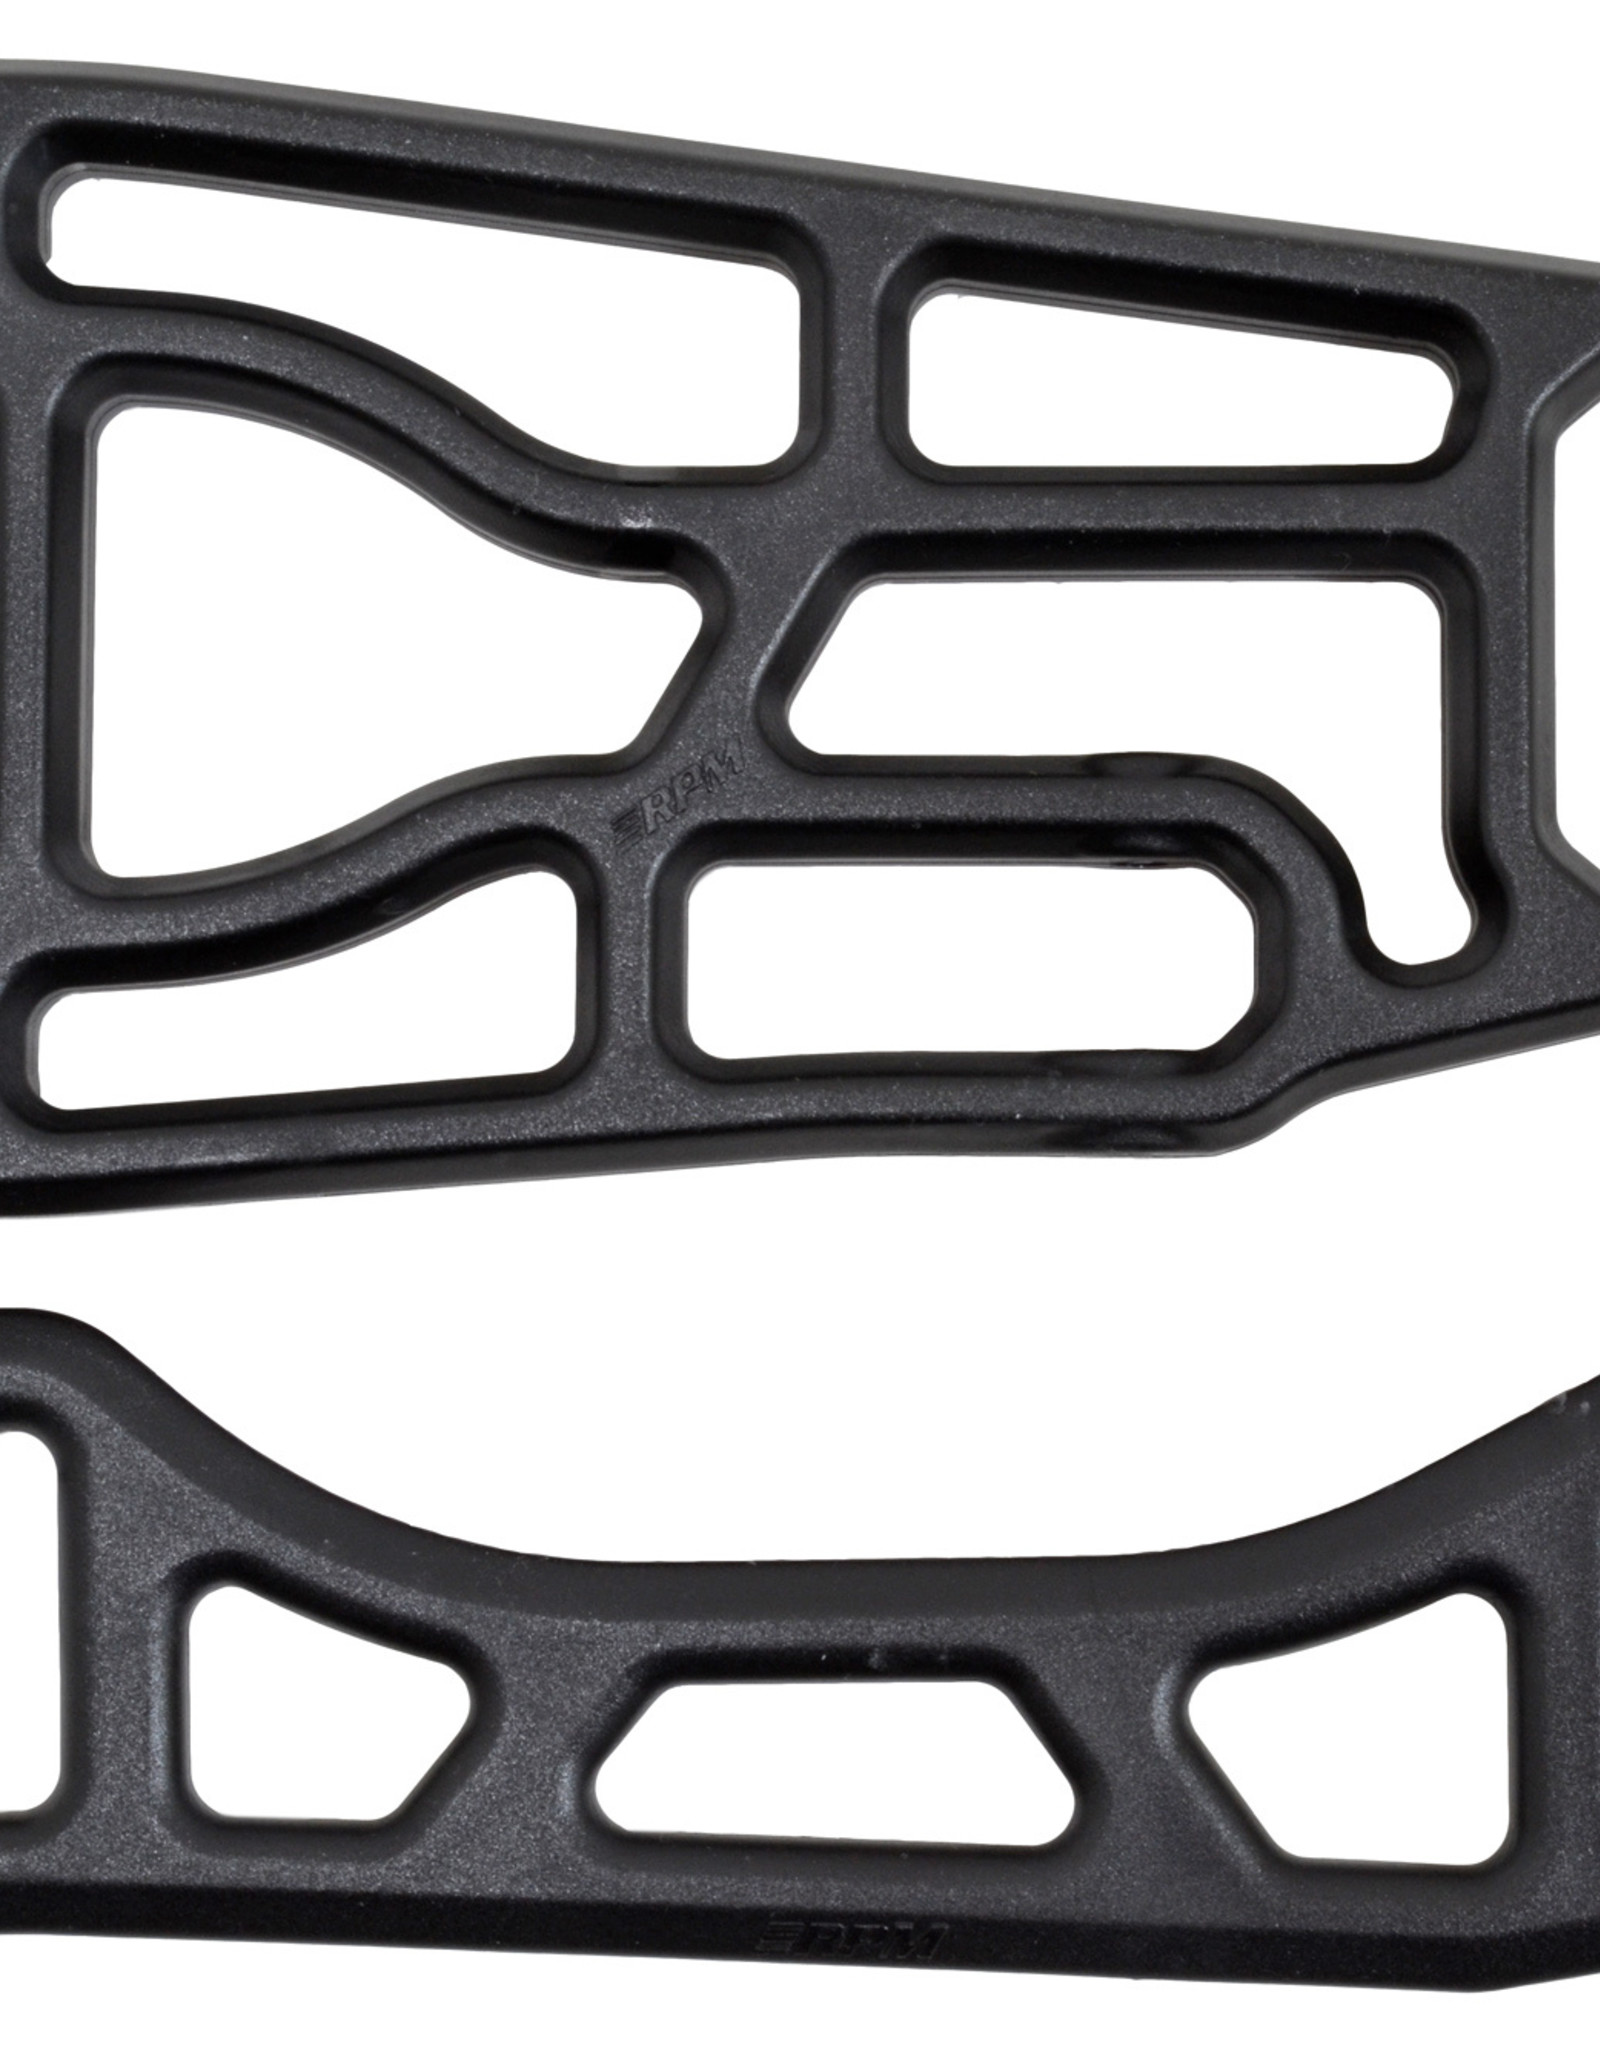 RPM RPM X-Maxx Upper & Lower A-arms Black ( Replaces 7031, 7030, 7029)